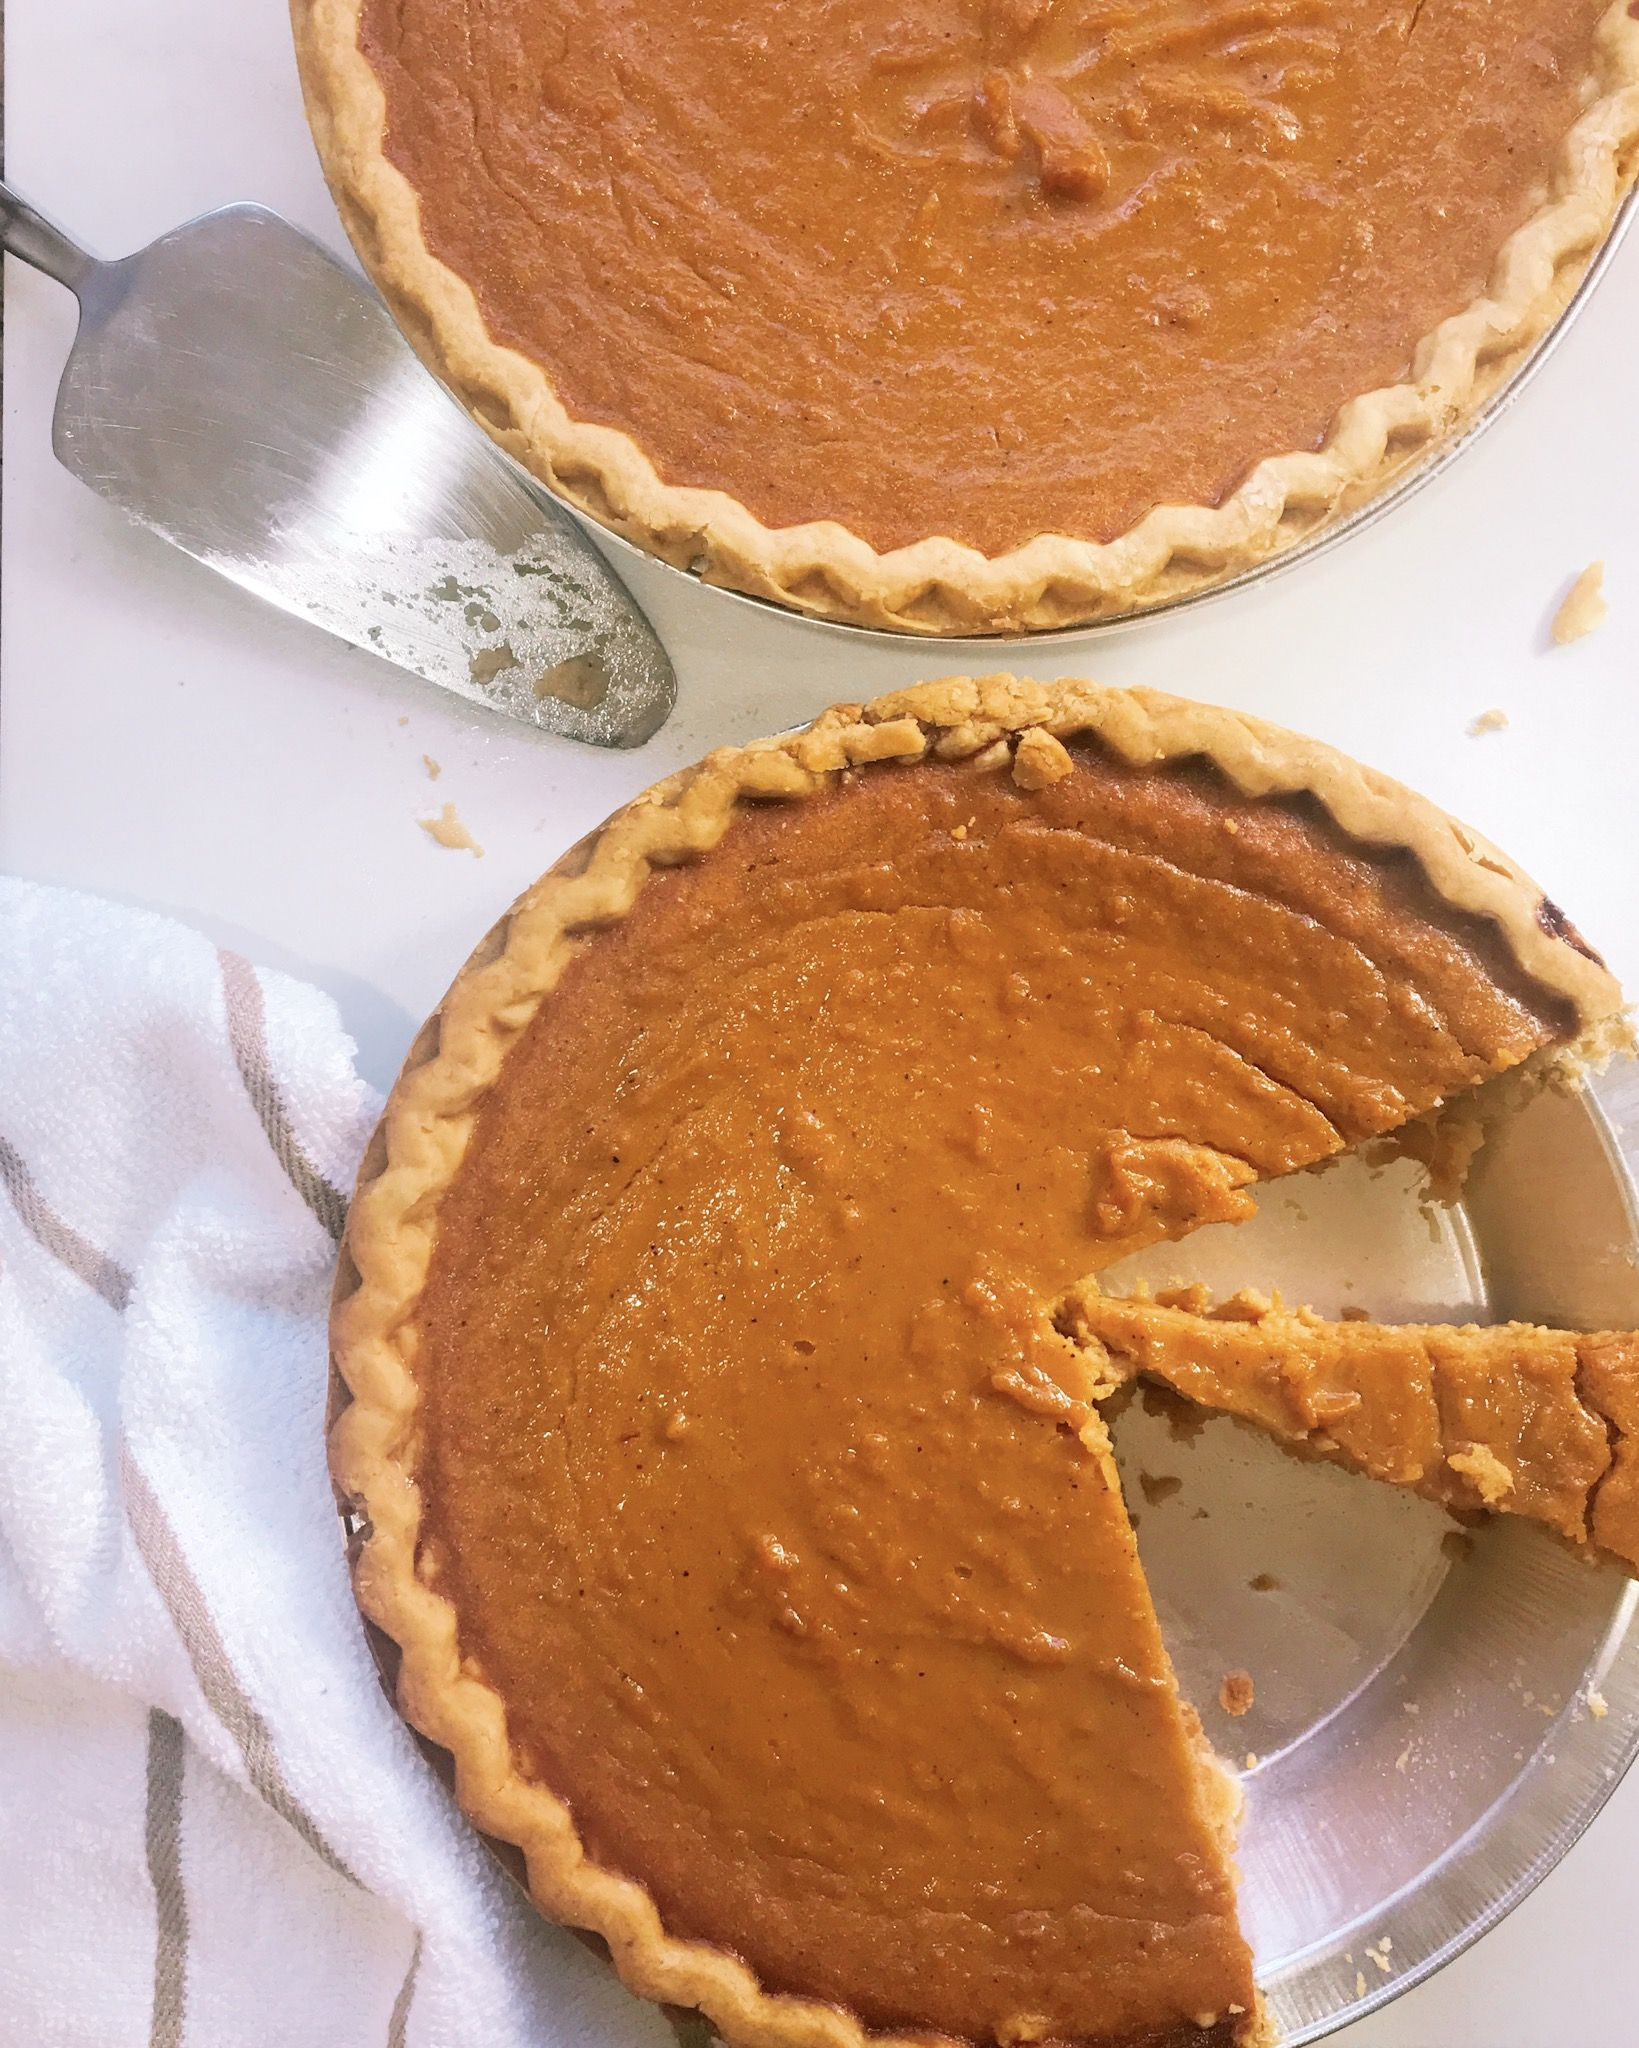 Black Folks Sweet Potato Pie Recipe Captured Desserts Recipe Sweet Potato Pies Recipes Sweet Potato Pie Black Folks Sweet Potato Pie Recipe